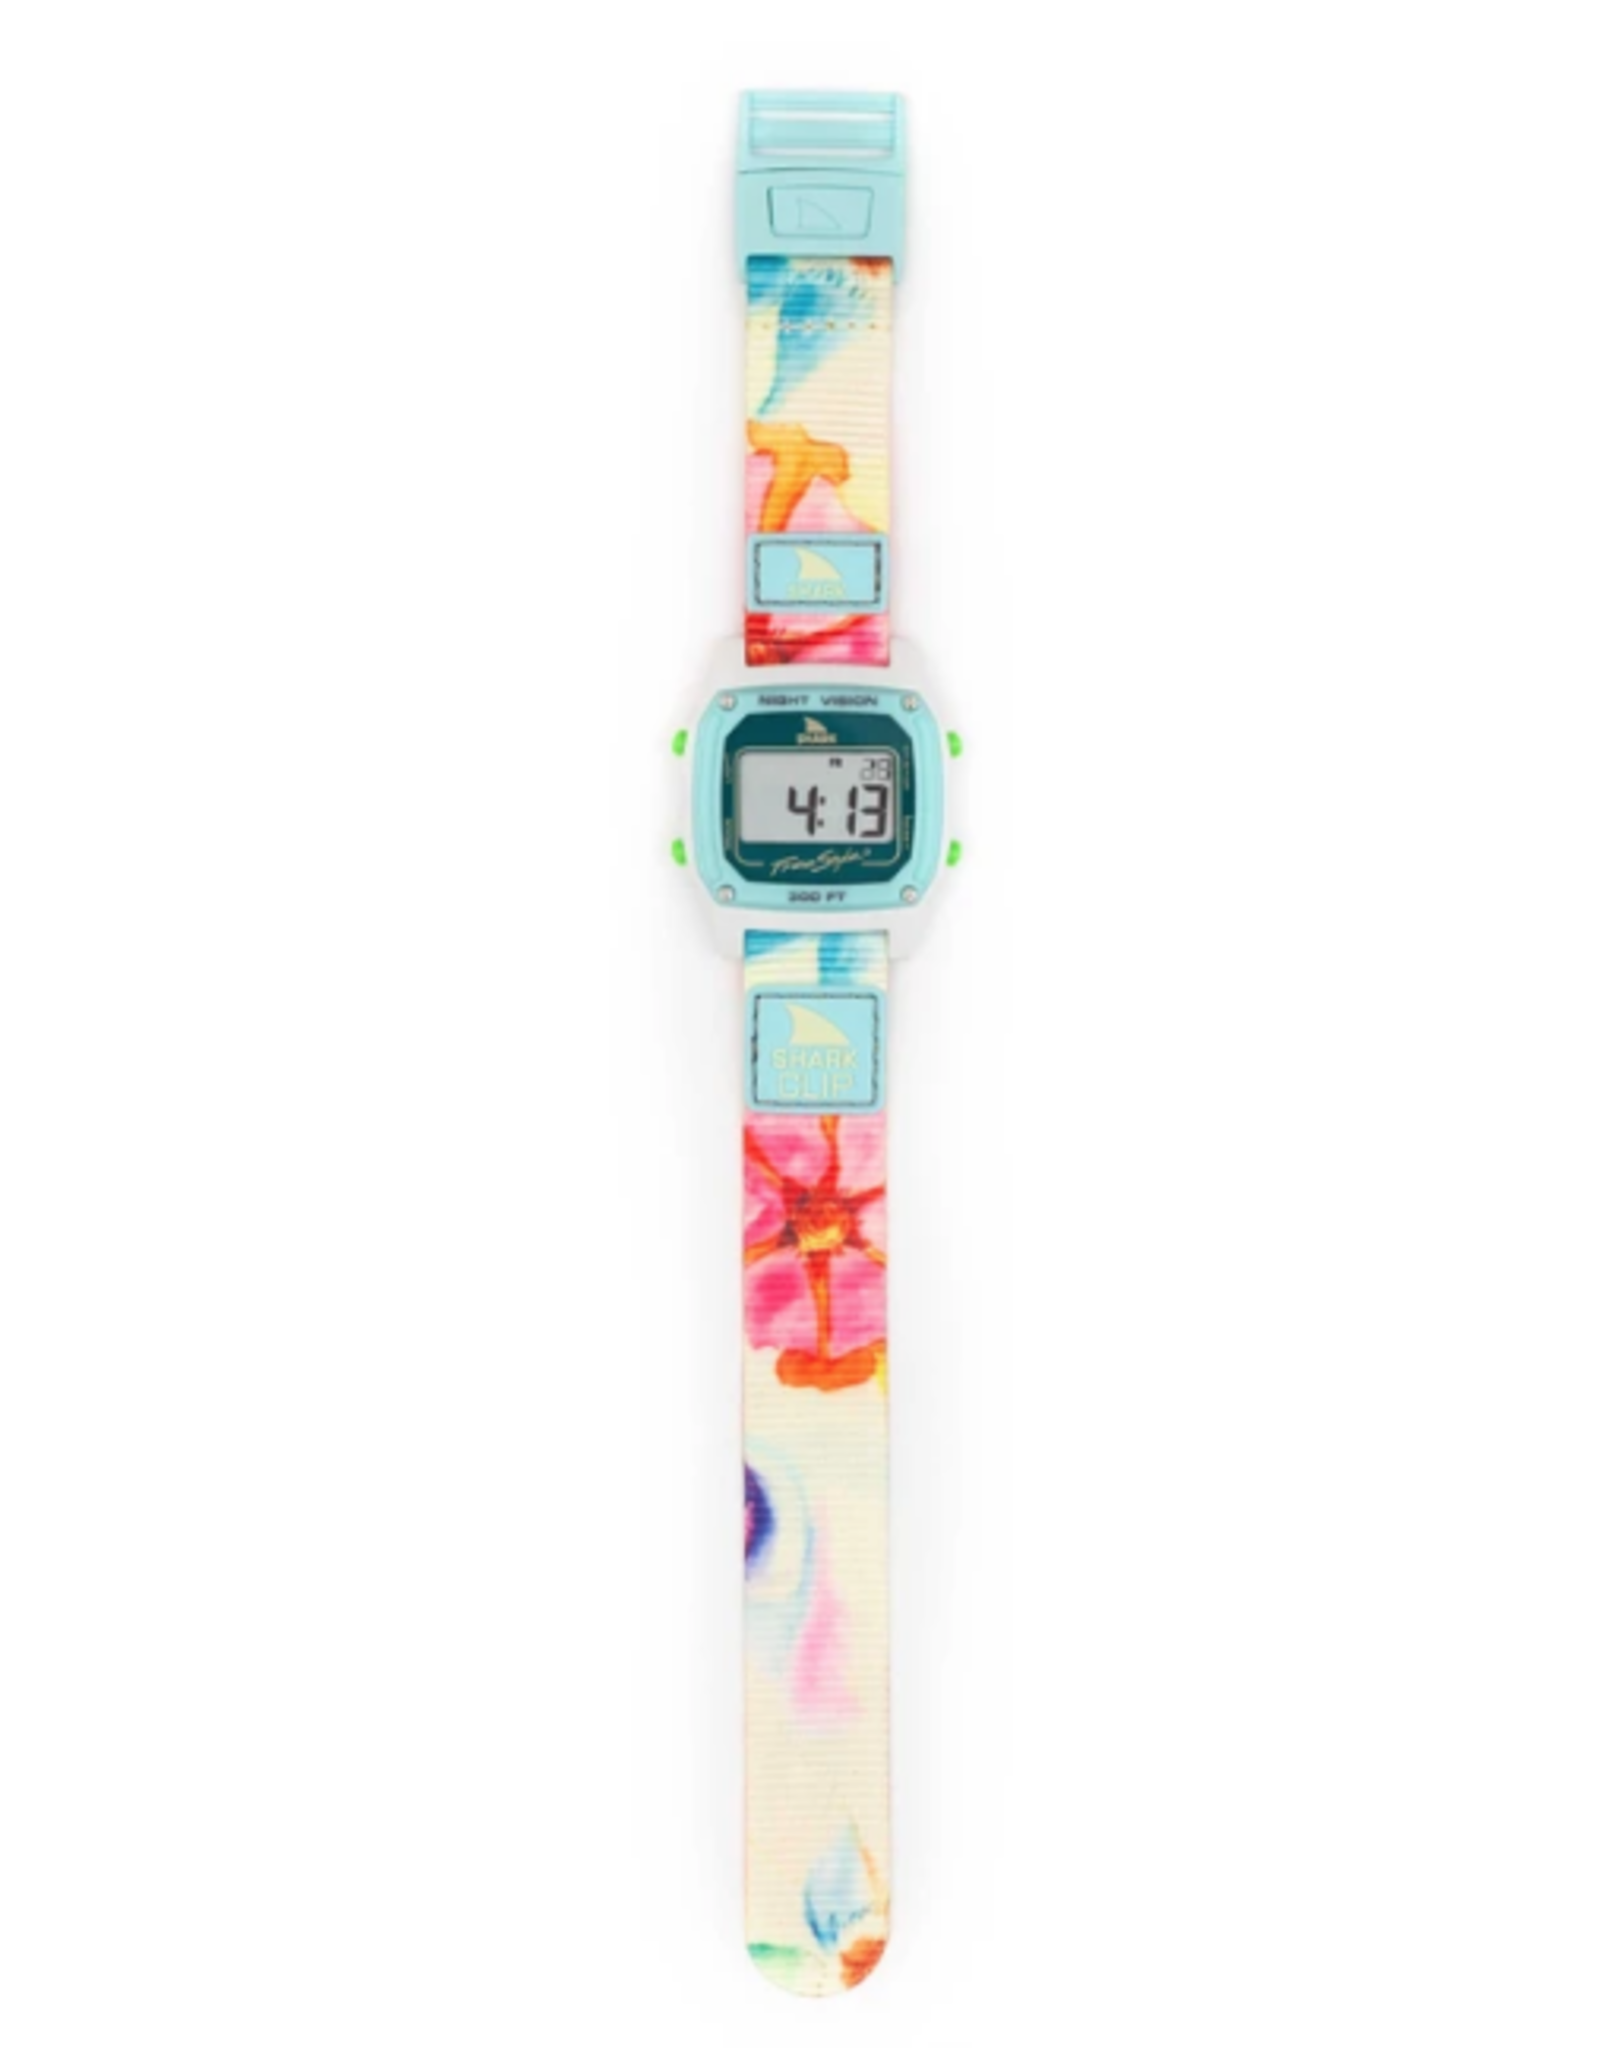 FREESTYLE FREESTYLE SHARK CLASSIC CLIP SAGE ERICKSON FLOWER POWER SIGNATURE WATCH